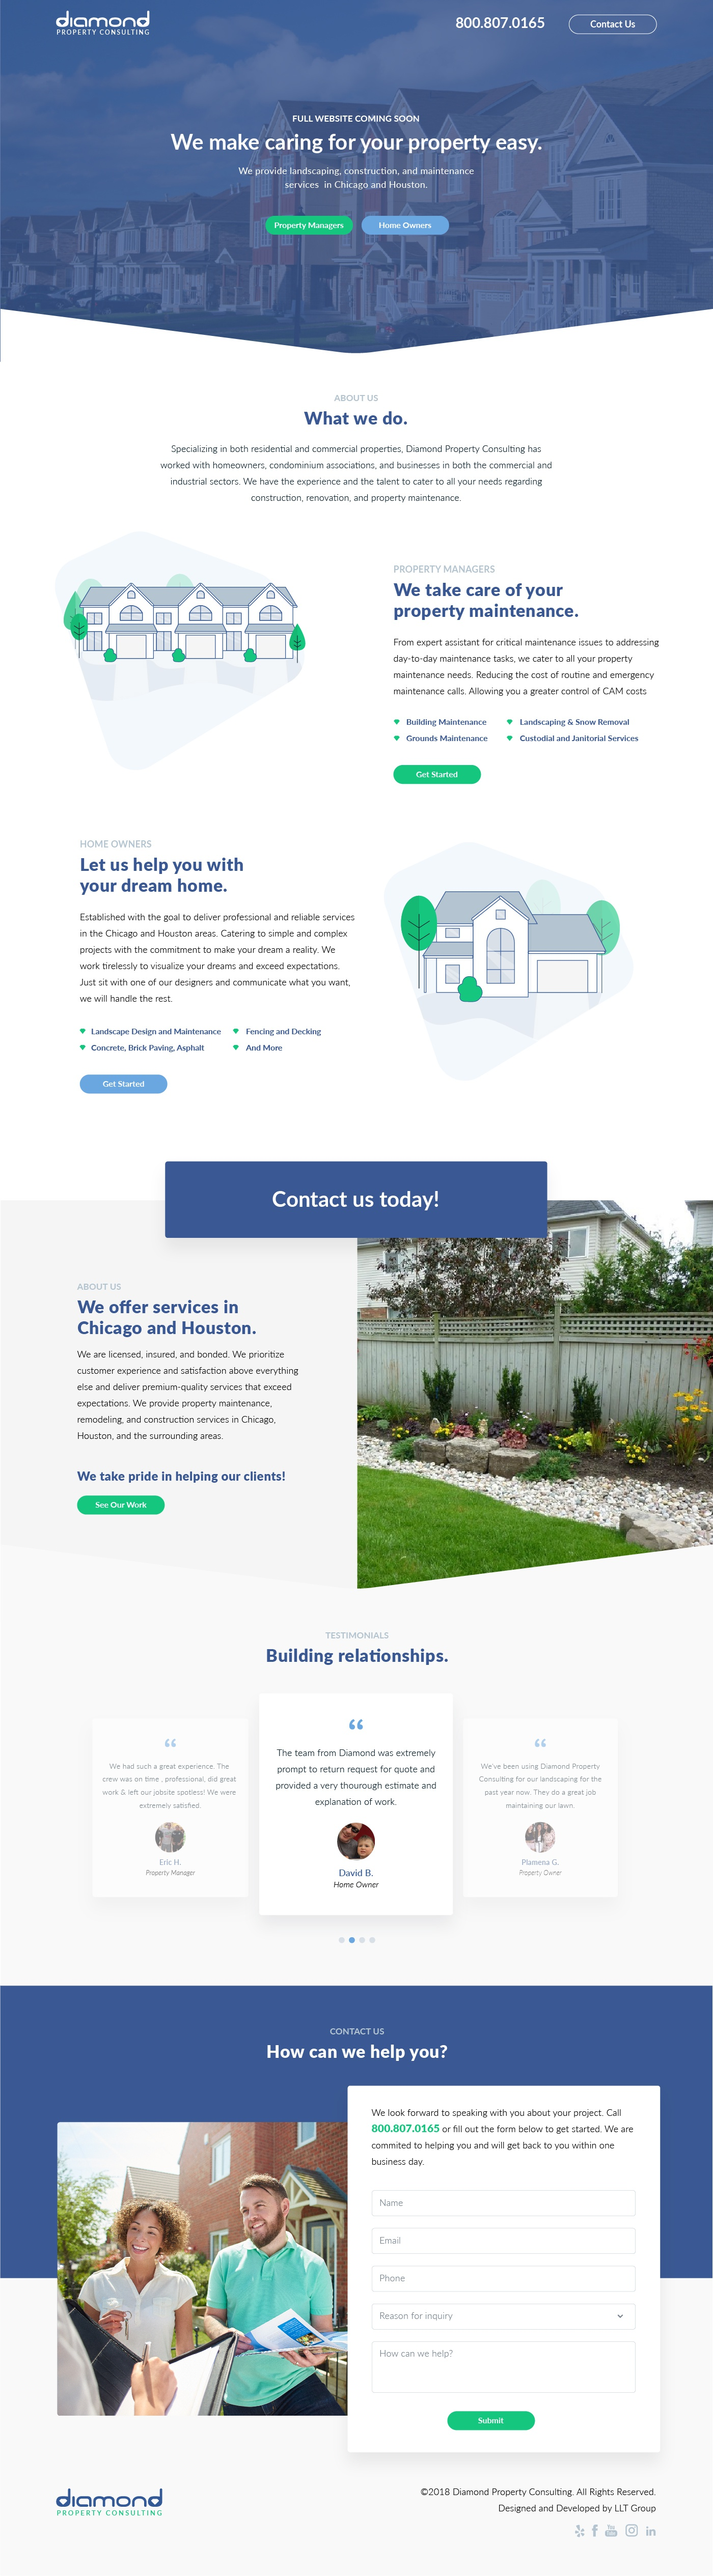 Diamondpropertyconsulting splash page